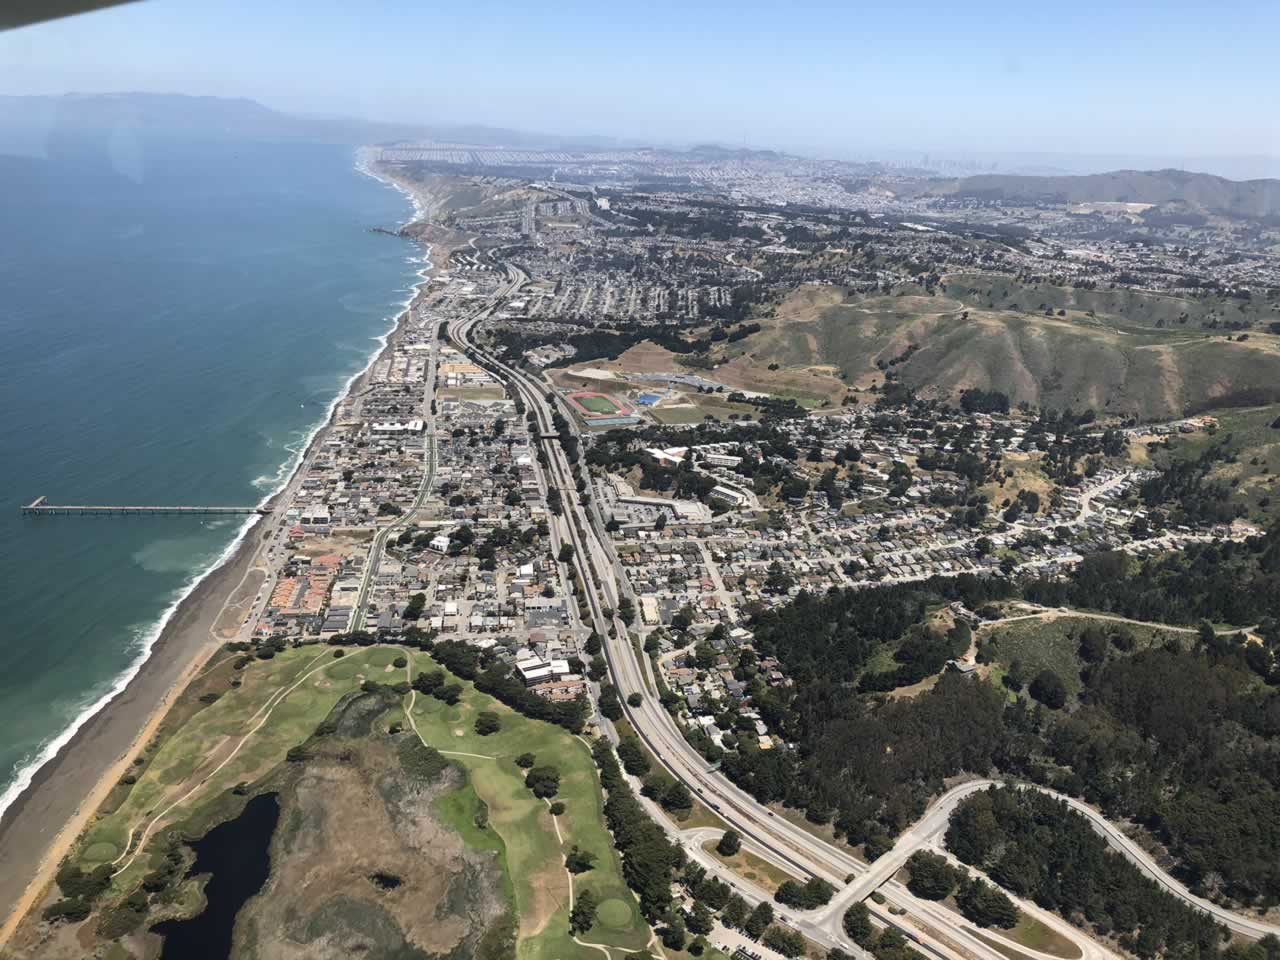 <div class='meta'><div class='origin-logo' data-origin='none'></div><span class='caption-text' data-credit='KGO-TV'>ABC7's Dion Lim captured these photos while soaring over the Bay Area in the Goodyear Blimp on Friday, June 1, 2018.</span></div>